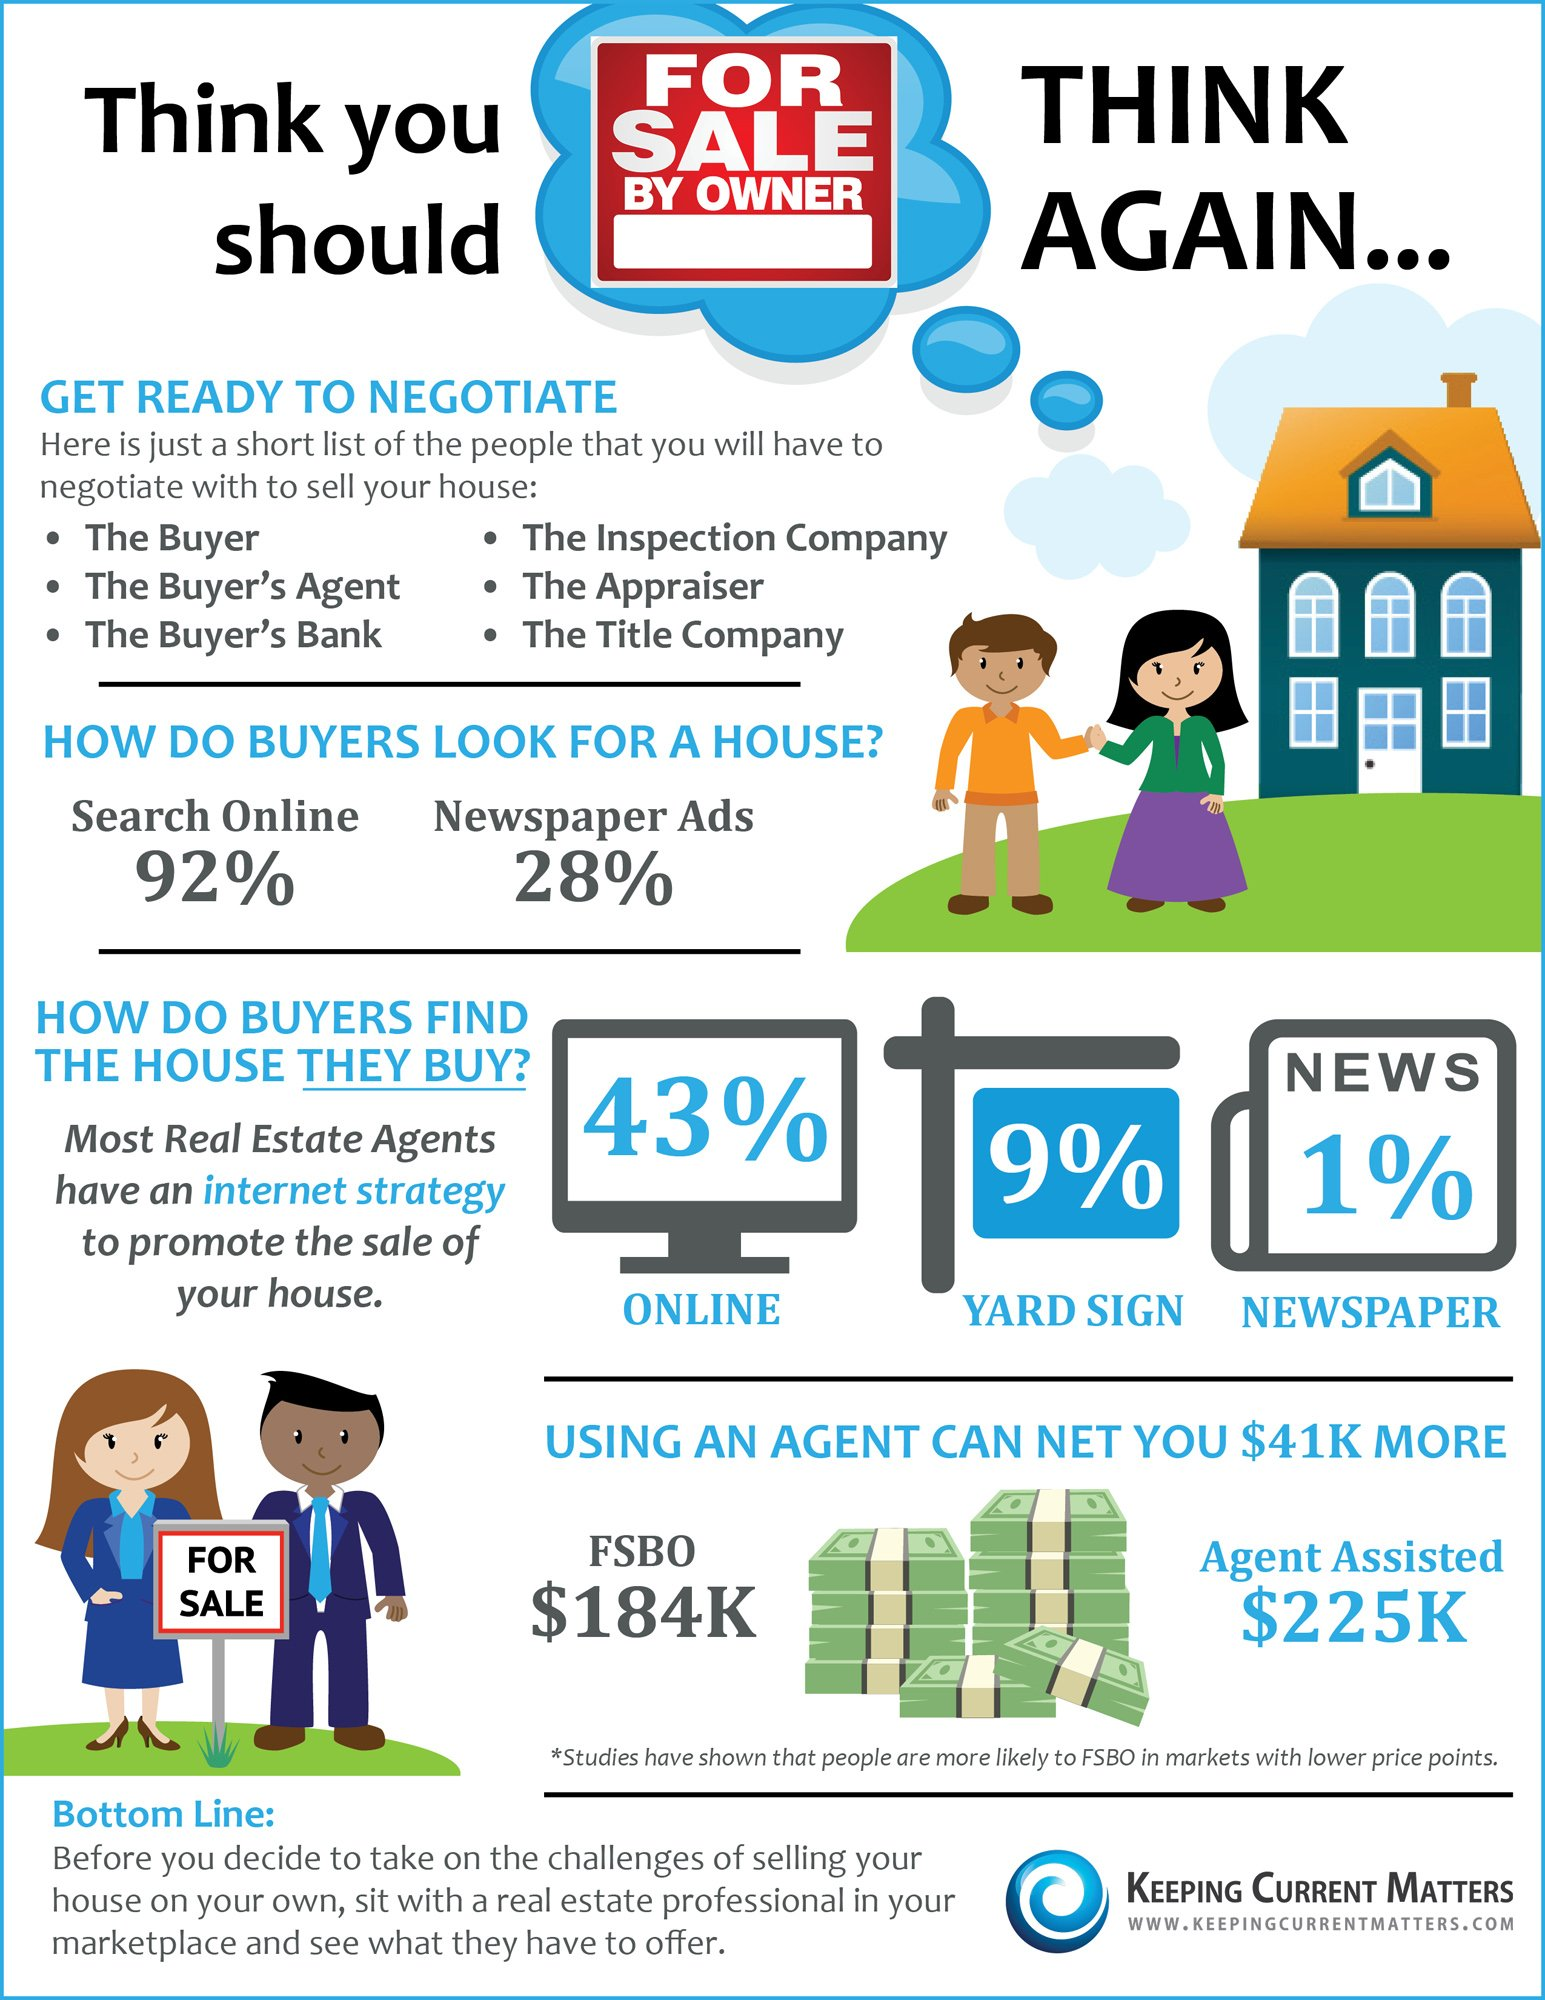 https://i1.wp.com/www.keepingcurrentmatters.com/wp-content/uploads/2014/04/FSBO.jpg